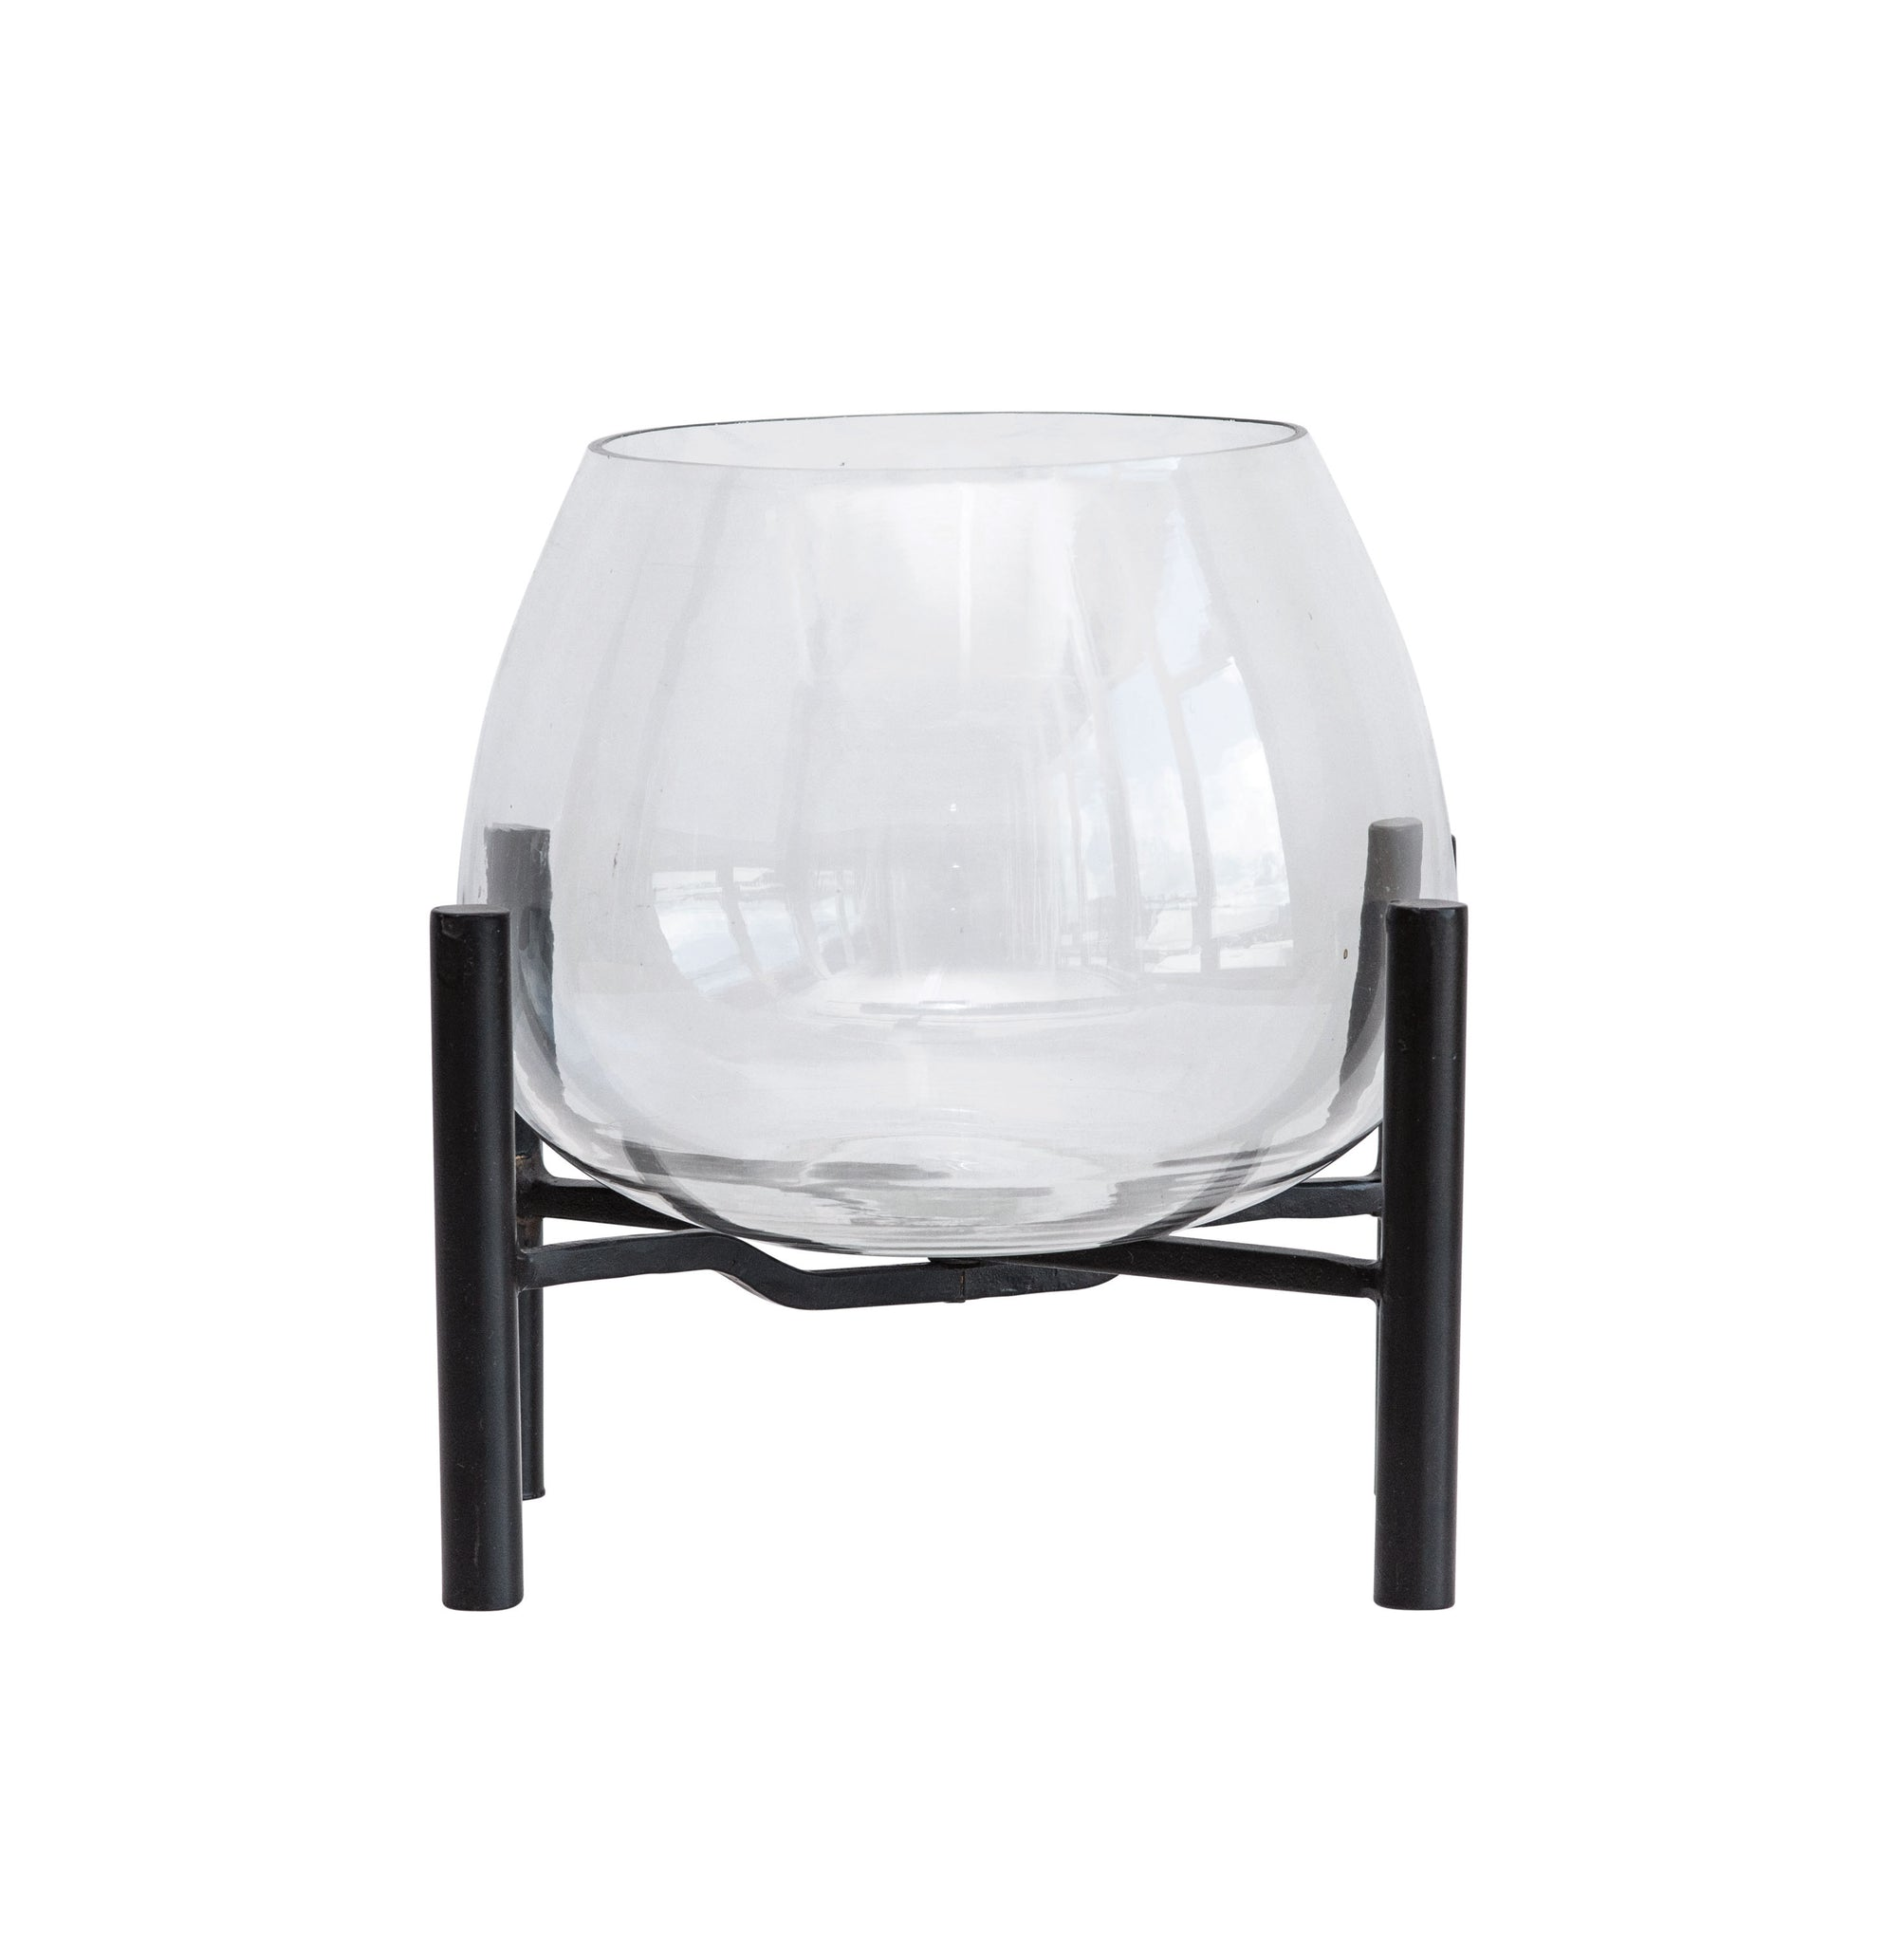 Large Clear Glass Planter on Black Metal Stand (Set of 2 Pieces)